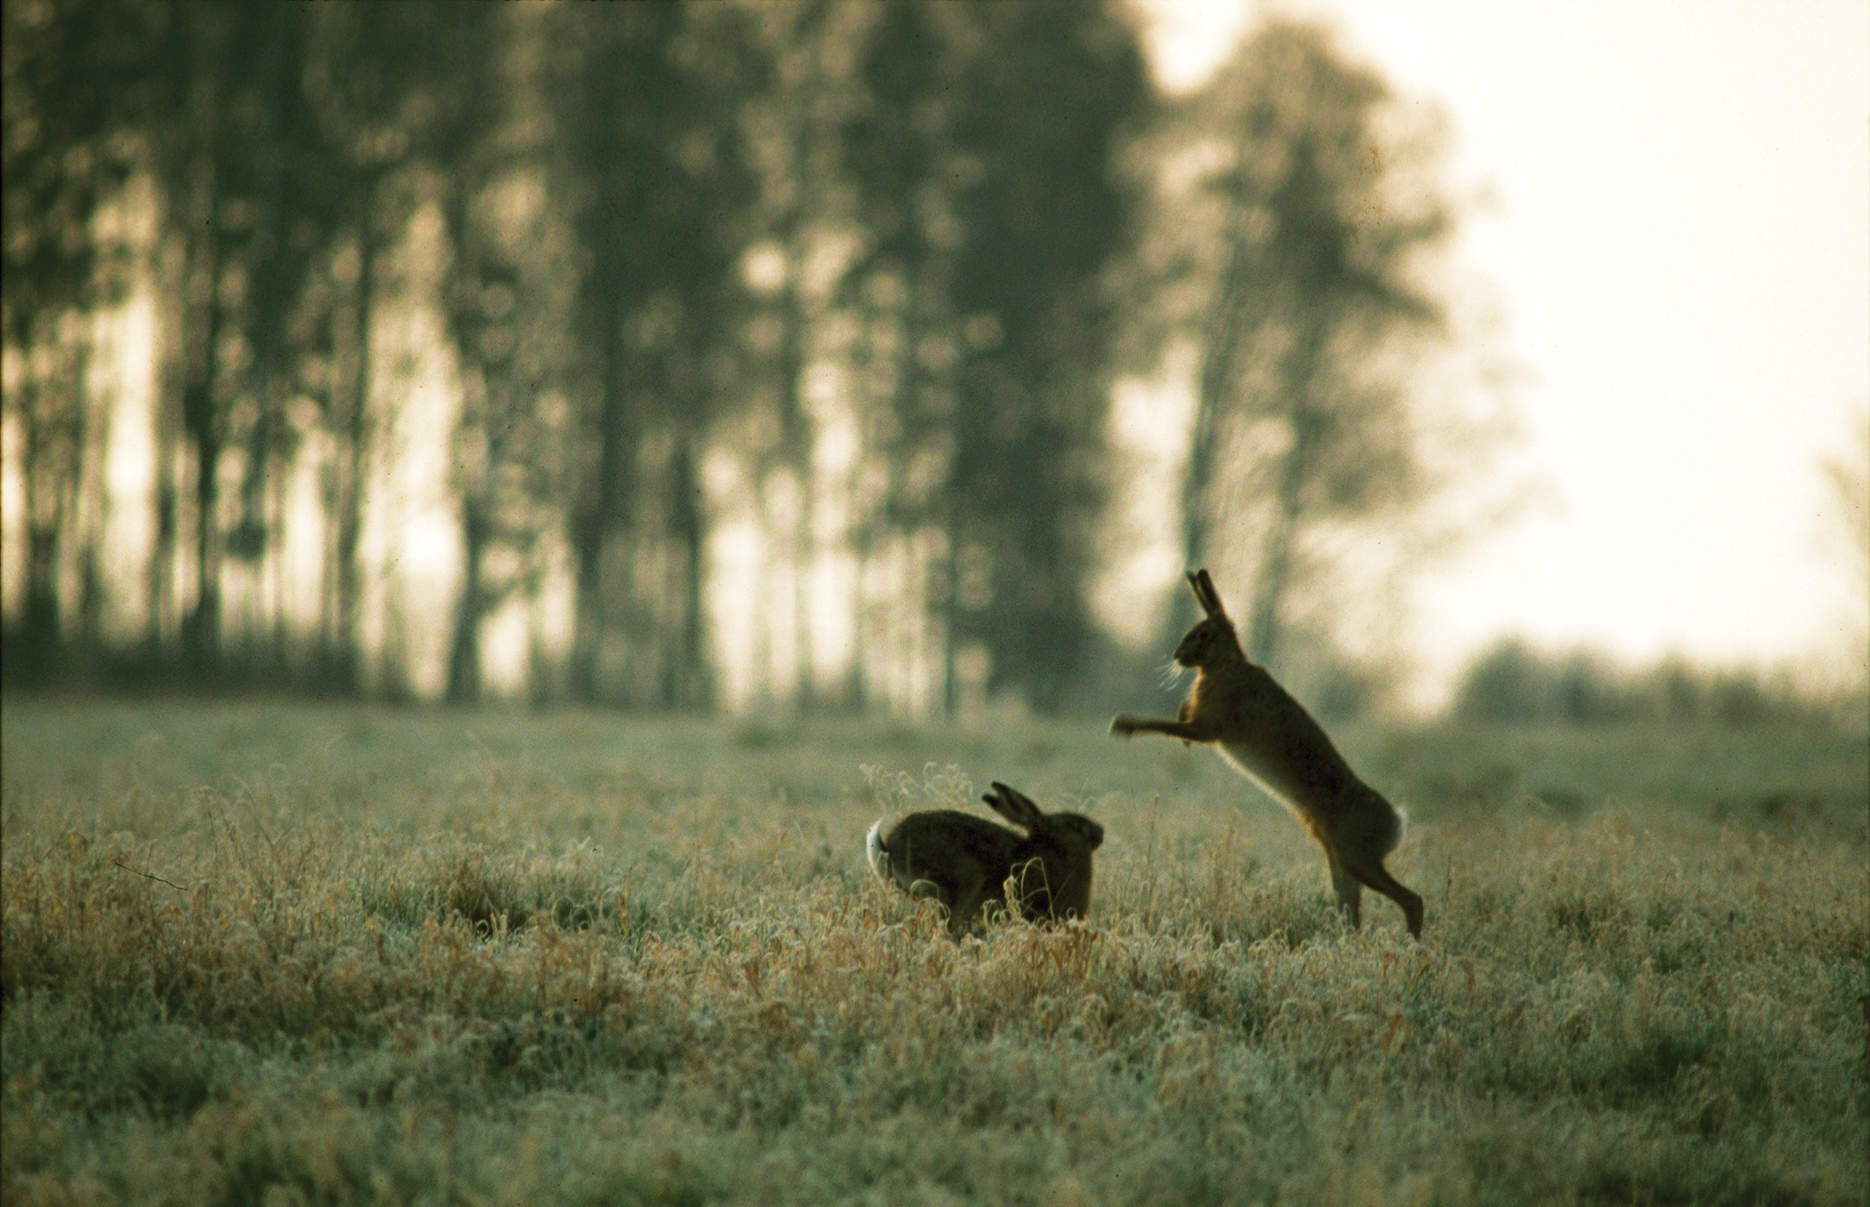 The graceful dance of shape-shifting hares